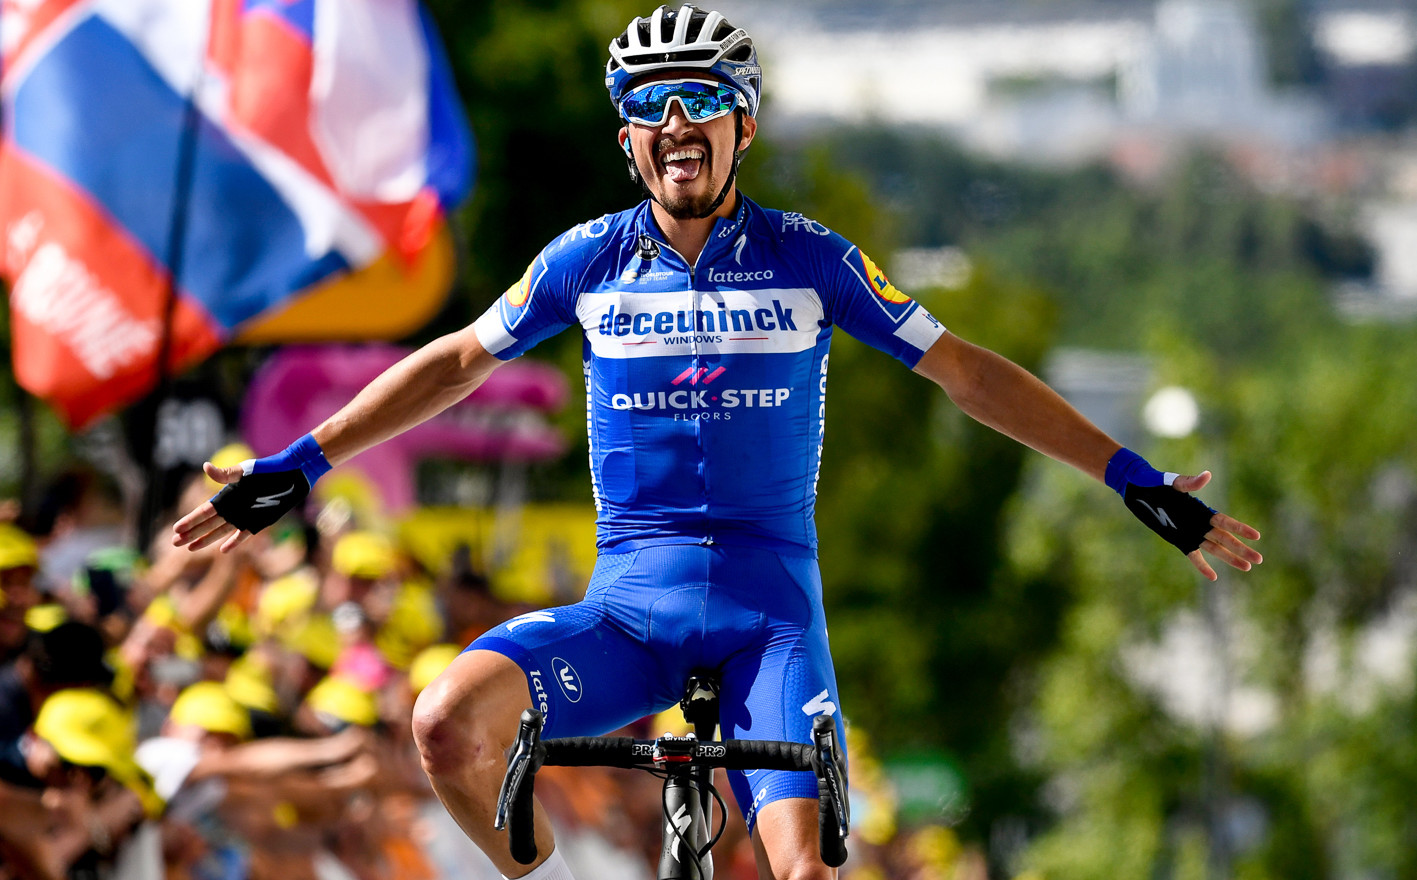 Julian Alaphilippe (F/Deceuninck) celebrates his victory at stage 3 of the Tour de France 2019.